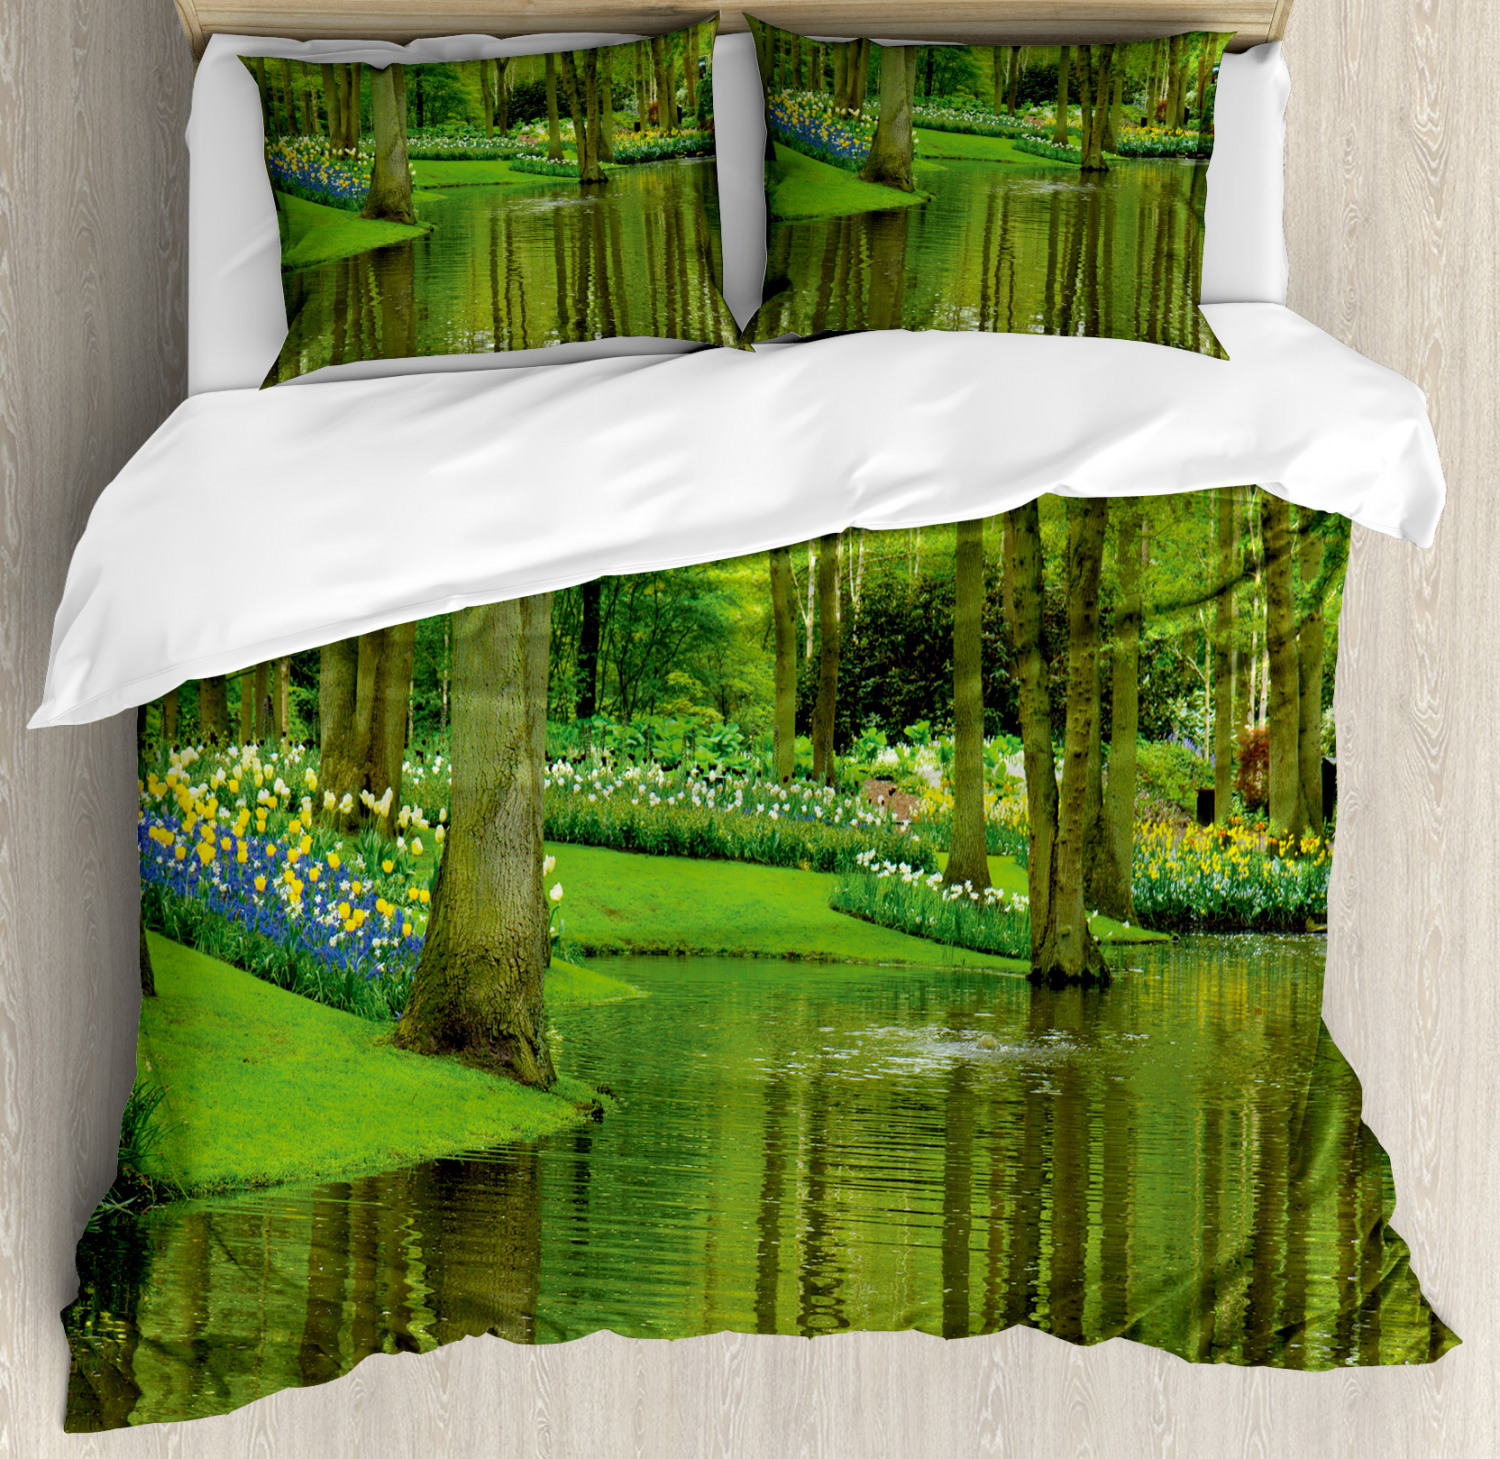 Nature Duvet Cover Set with Pillow Shams Forest with Lake Botany Print